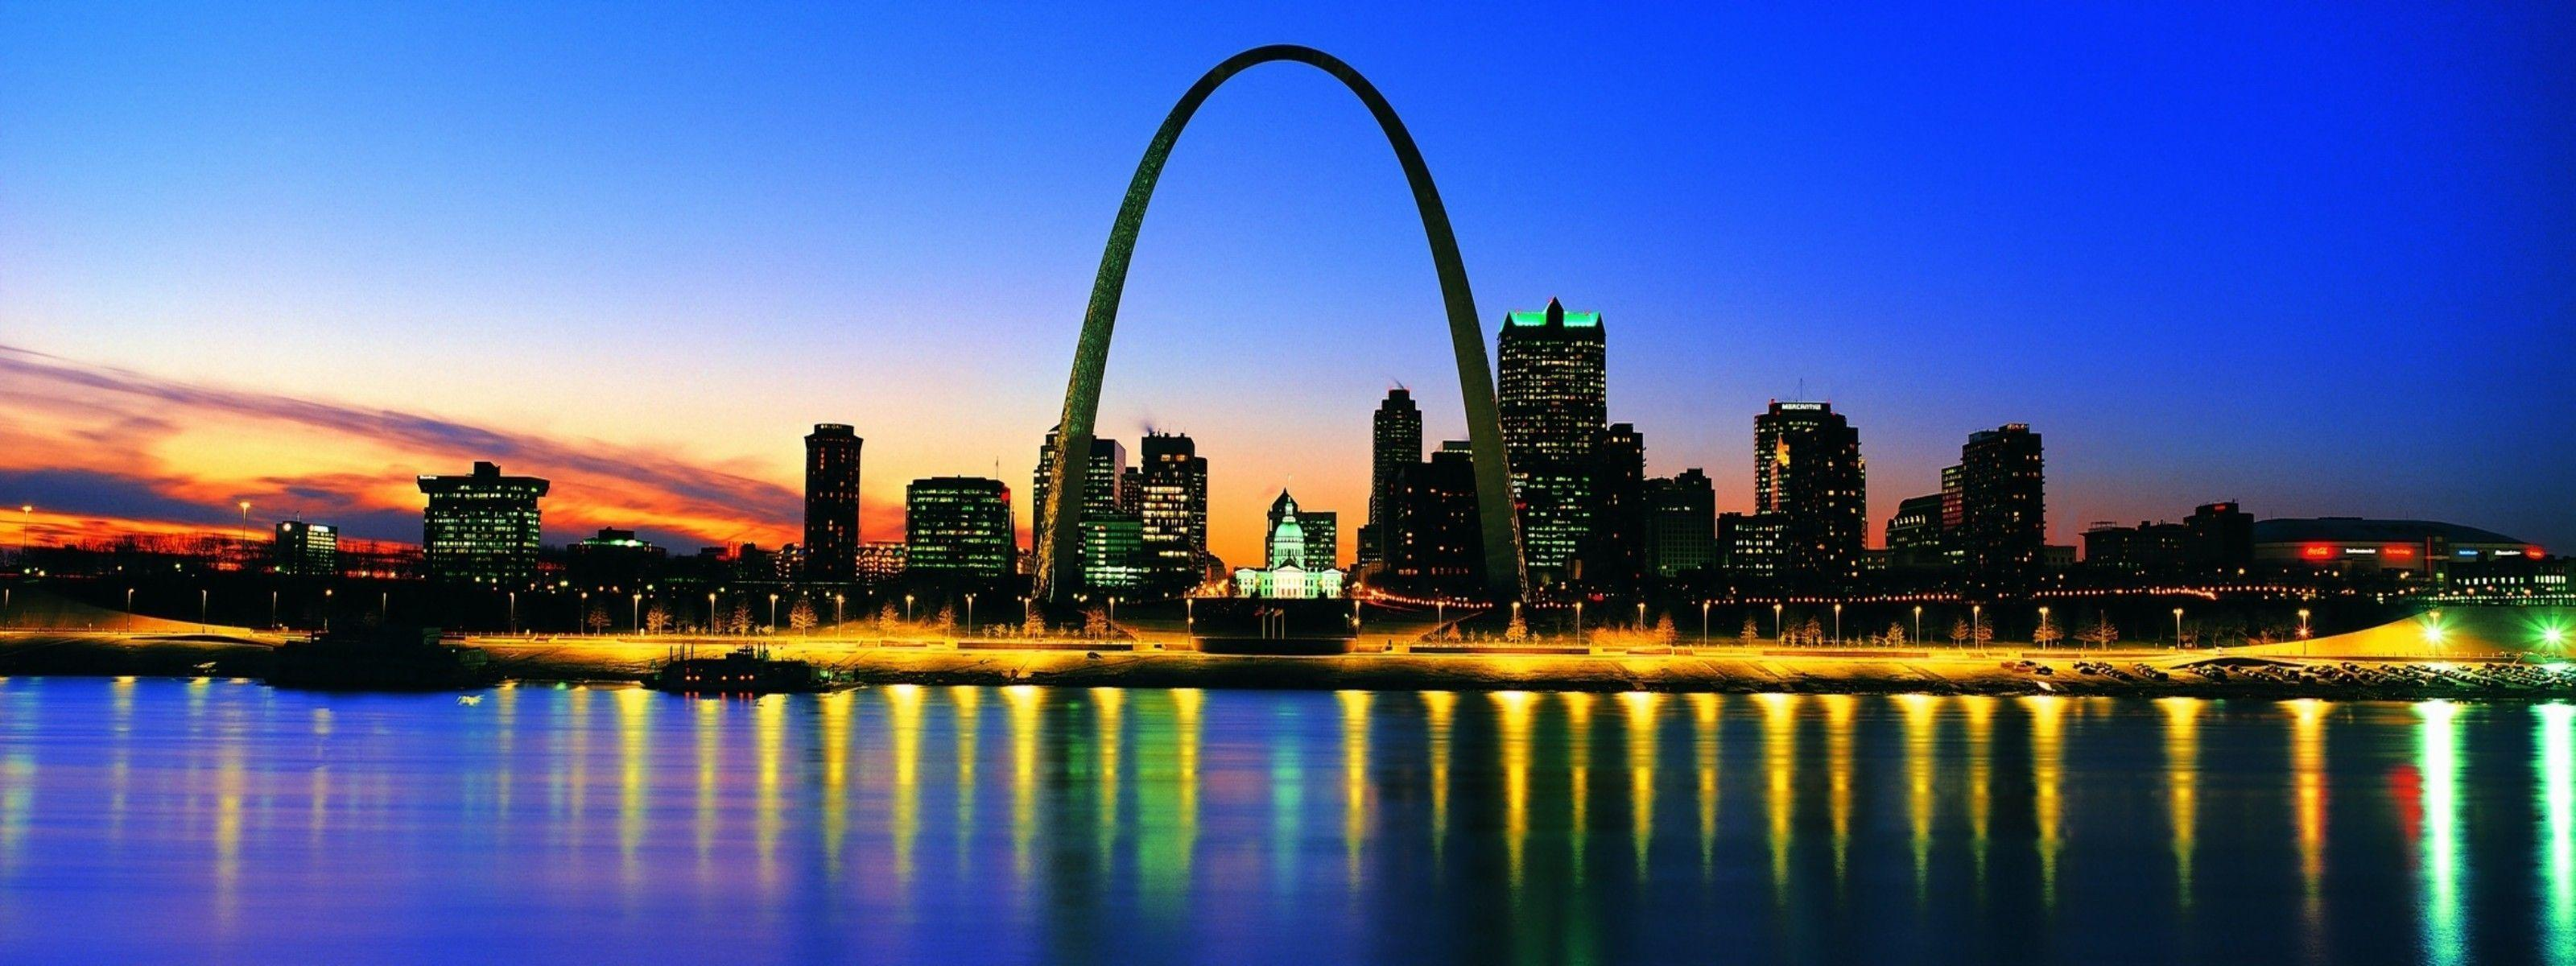 The-Gateway-Arch-in-St.-Louis.jpg